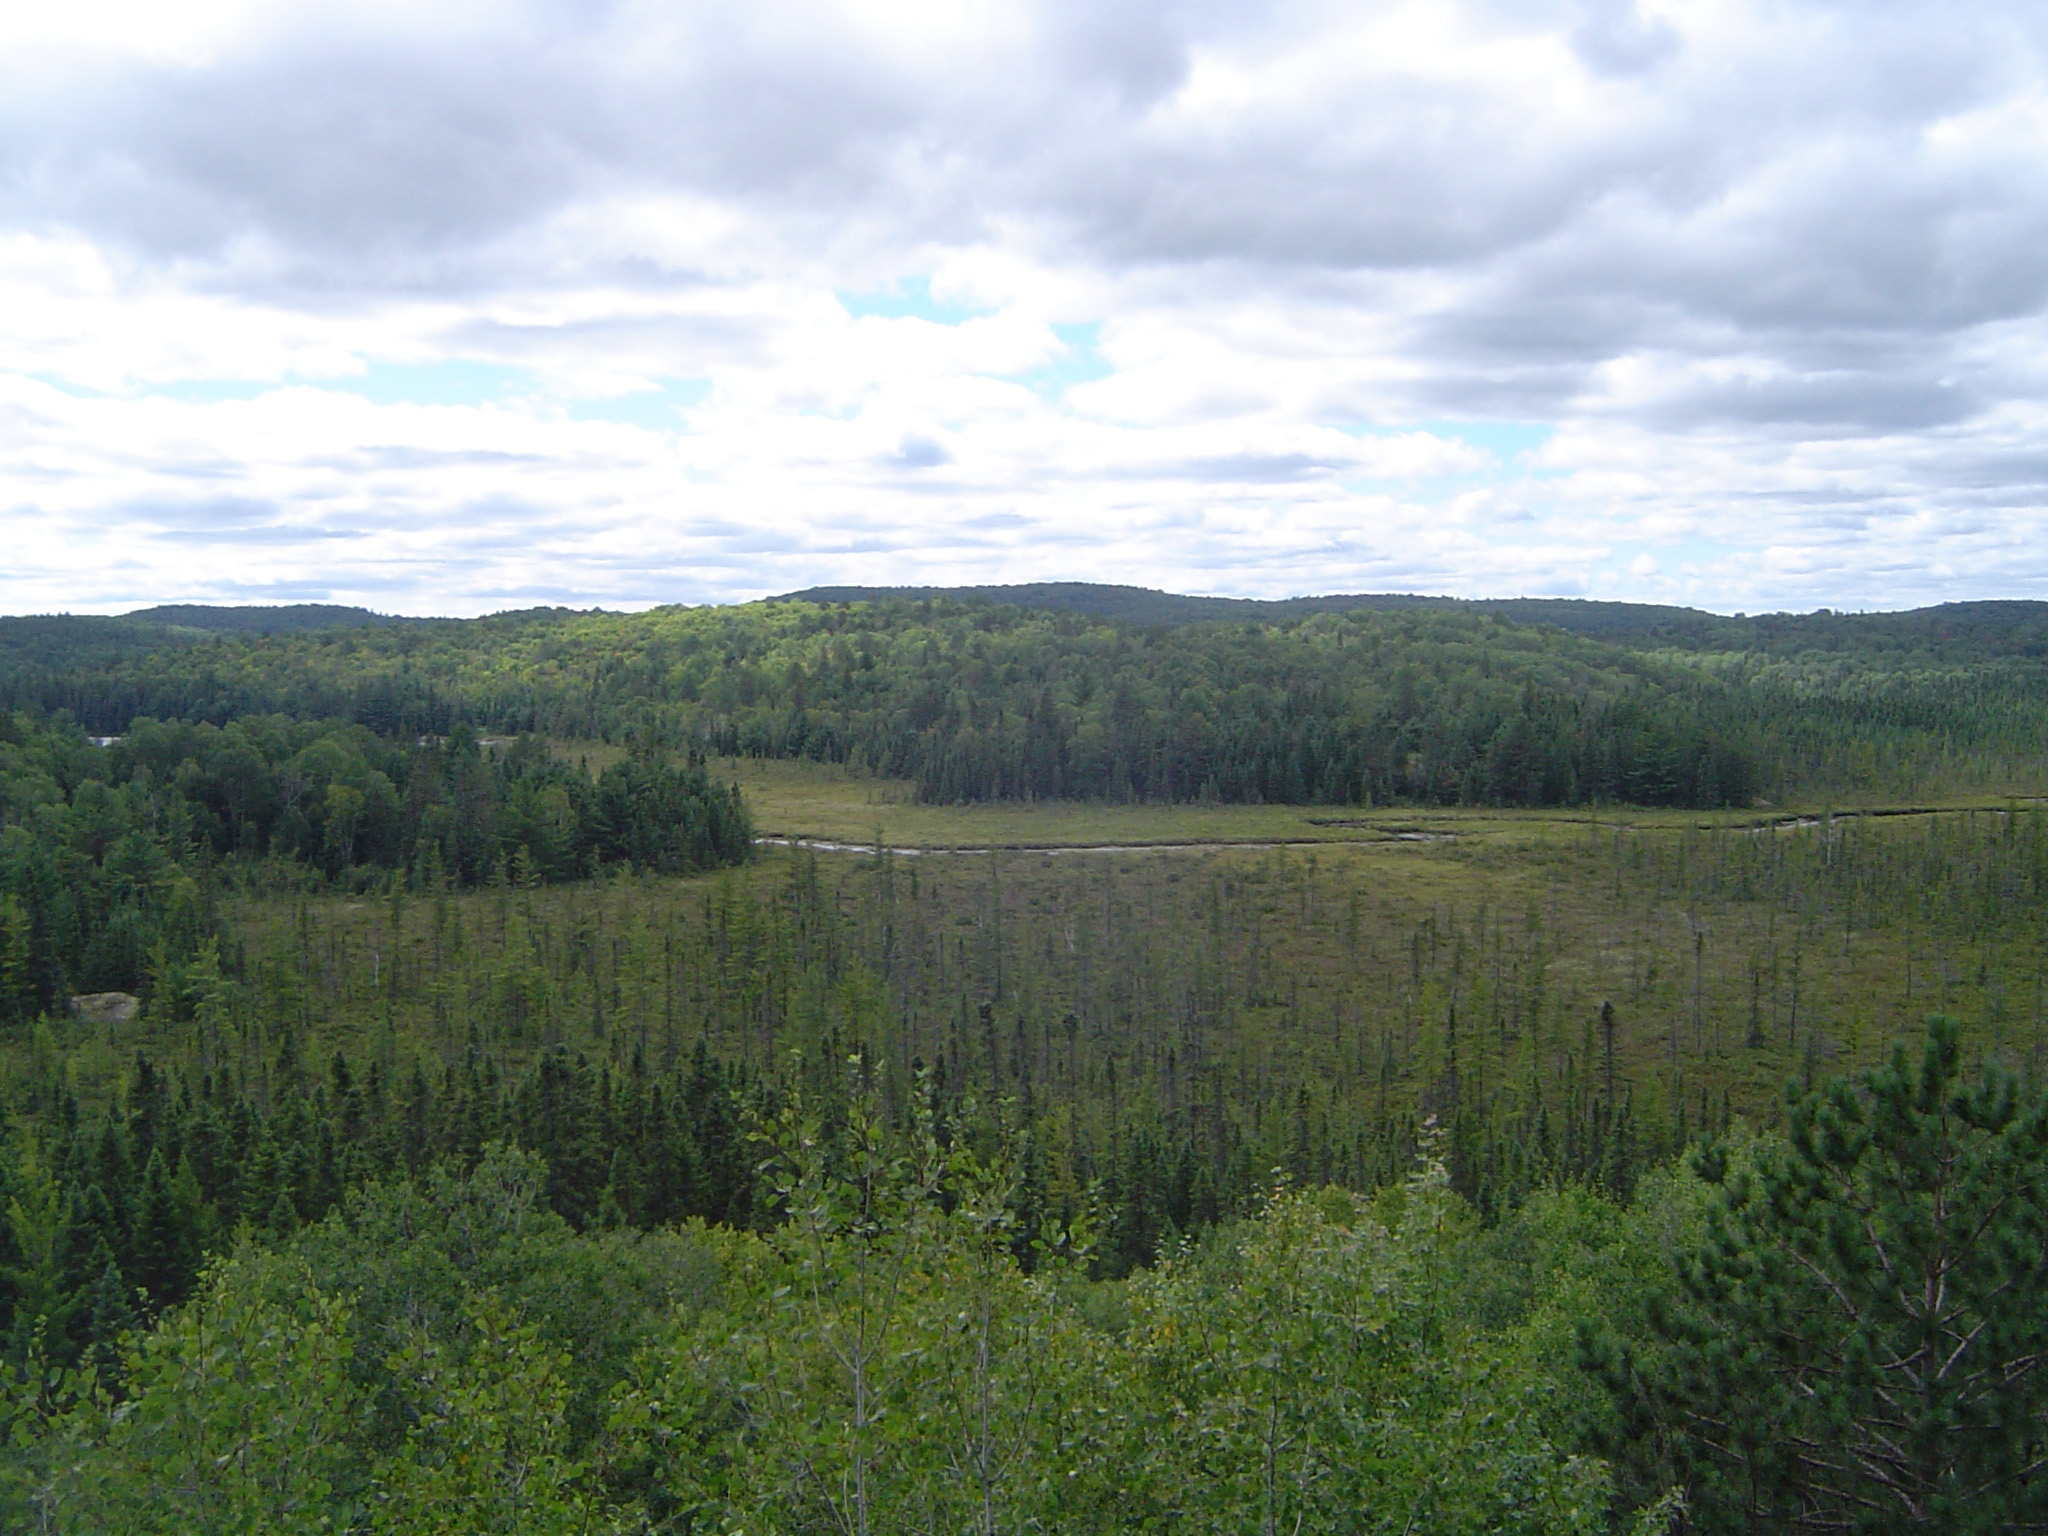 Overview of Forest at Algonquin Park, Ontario, Canada